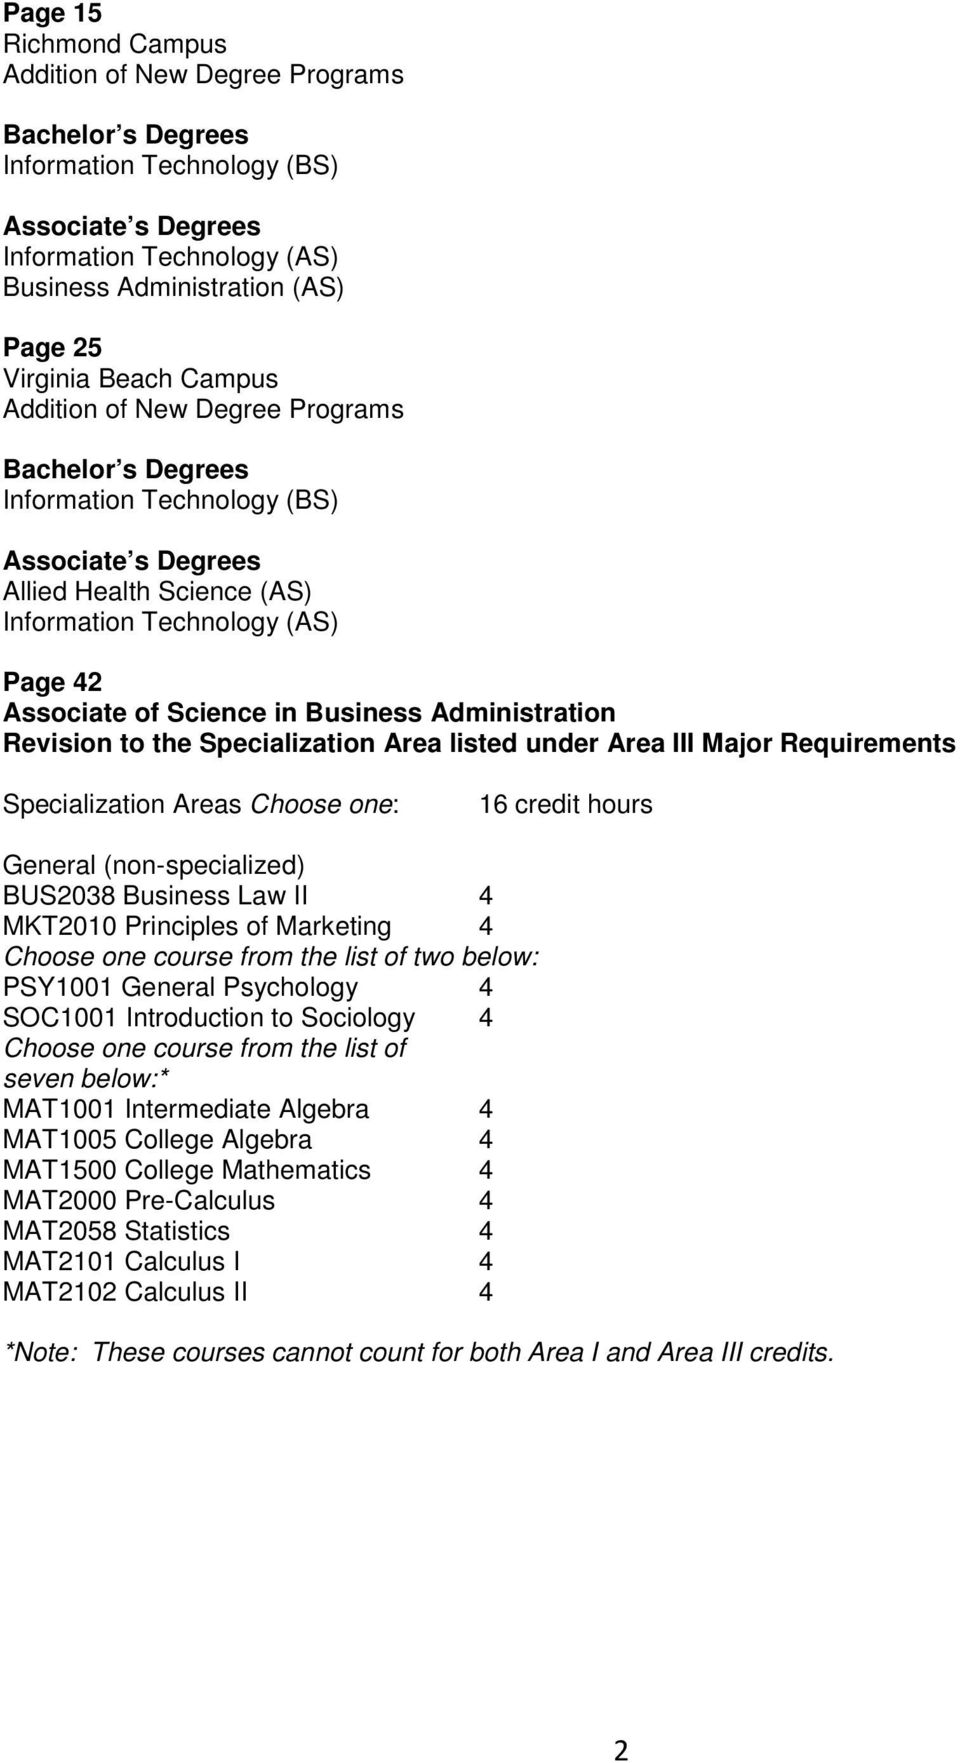 Business Administration Revision to the Specialization Area listed under Area III Major Requirements Specialization Areas Choose one: 16 credit hours General (non-specialized) BUS2038 Business Law II